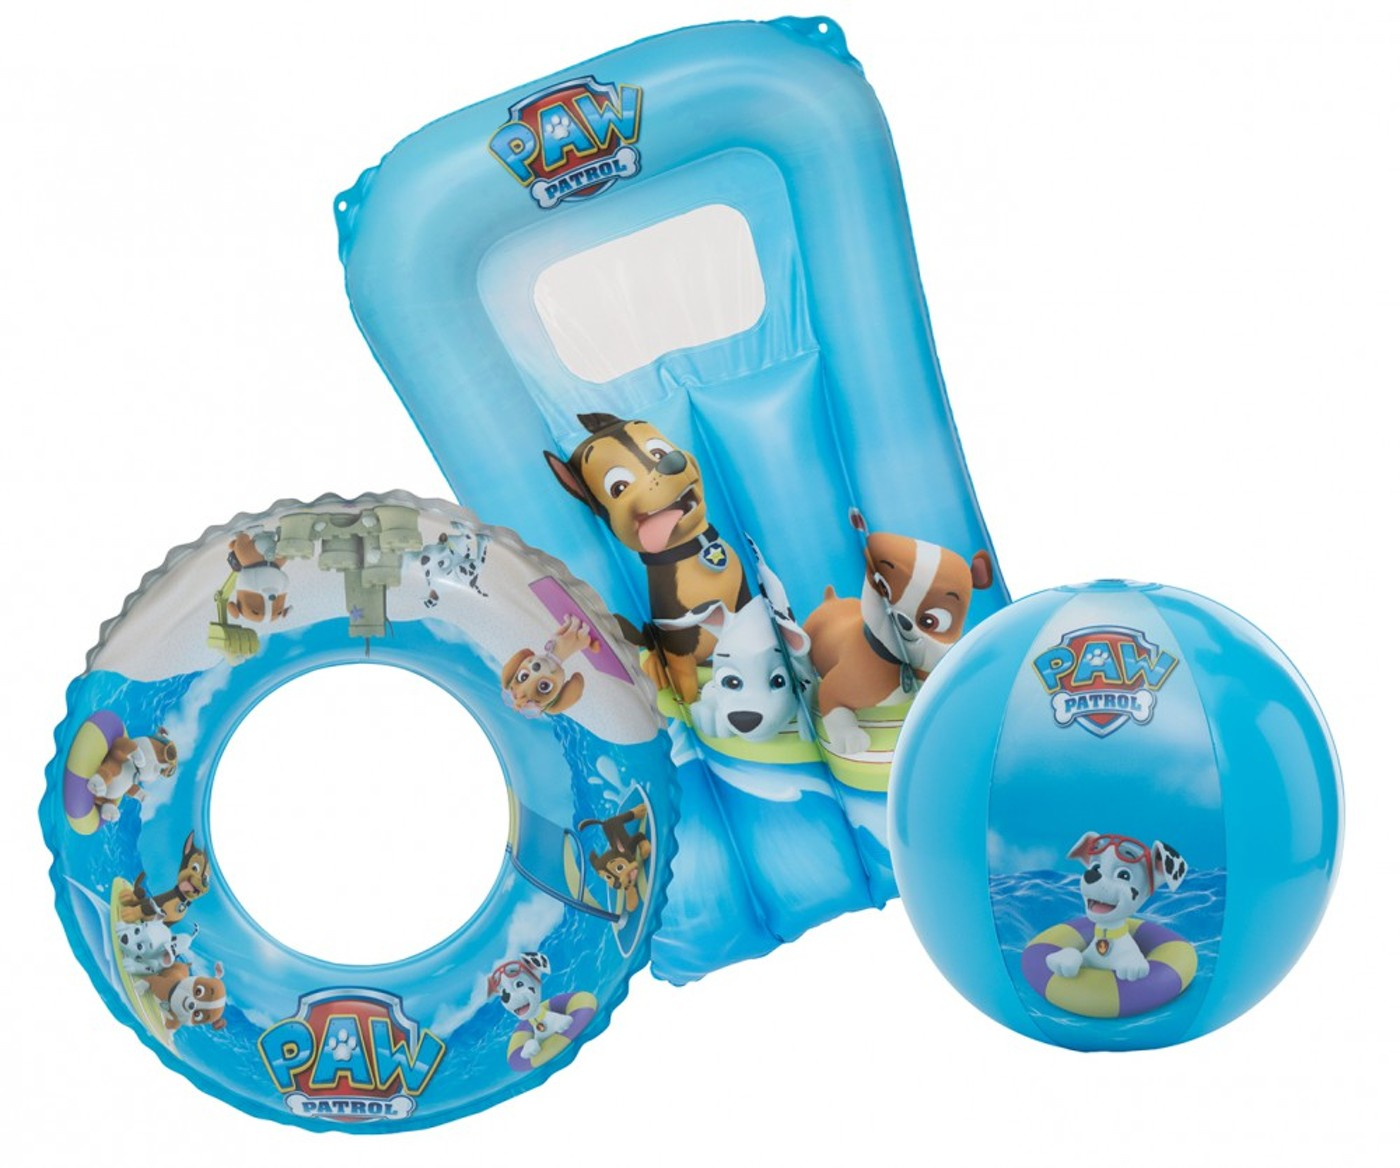 HAPPY PEOPLE Paw Patrol Strandset - Kinder